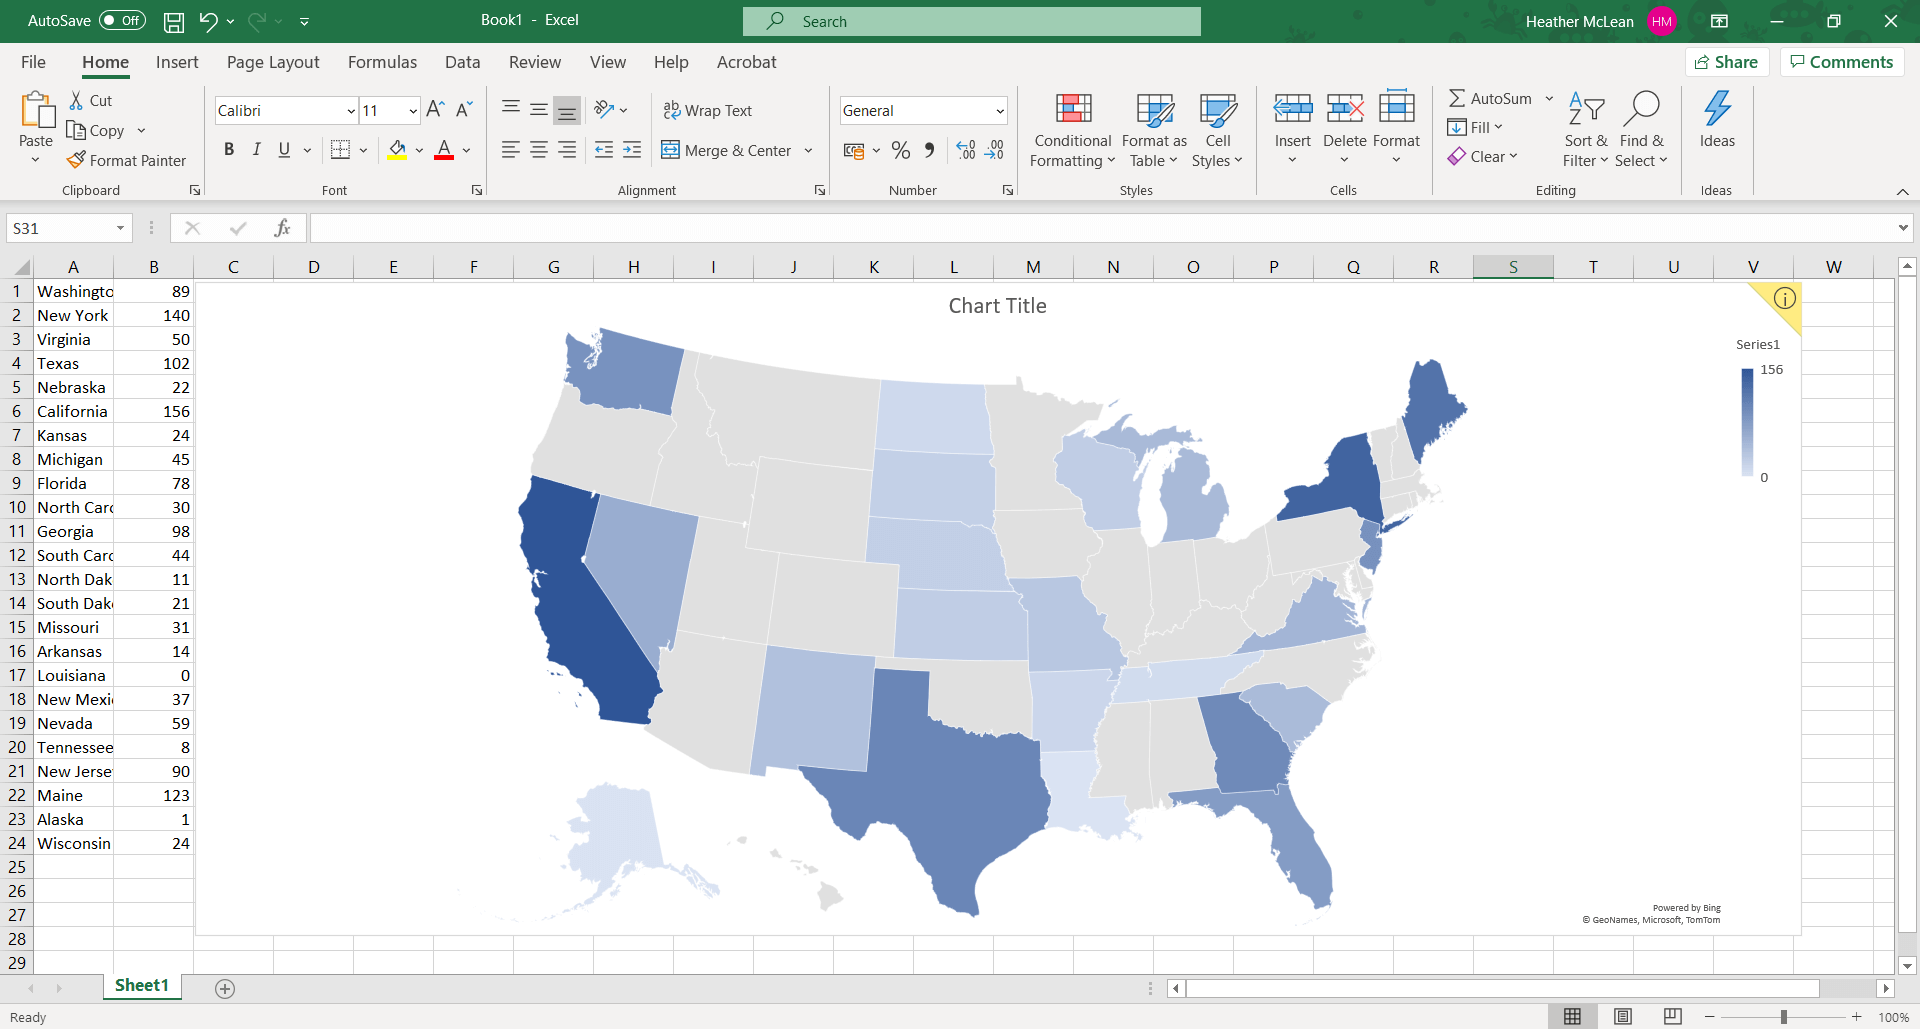 Excel heat map 1